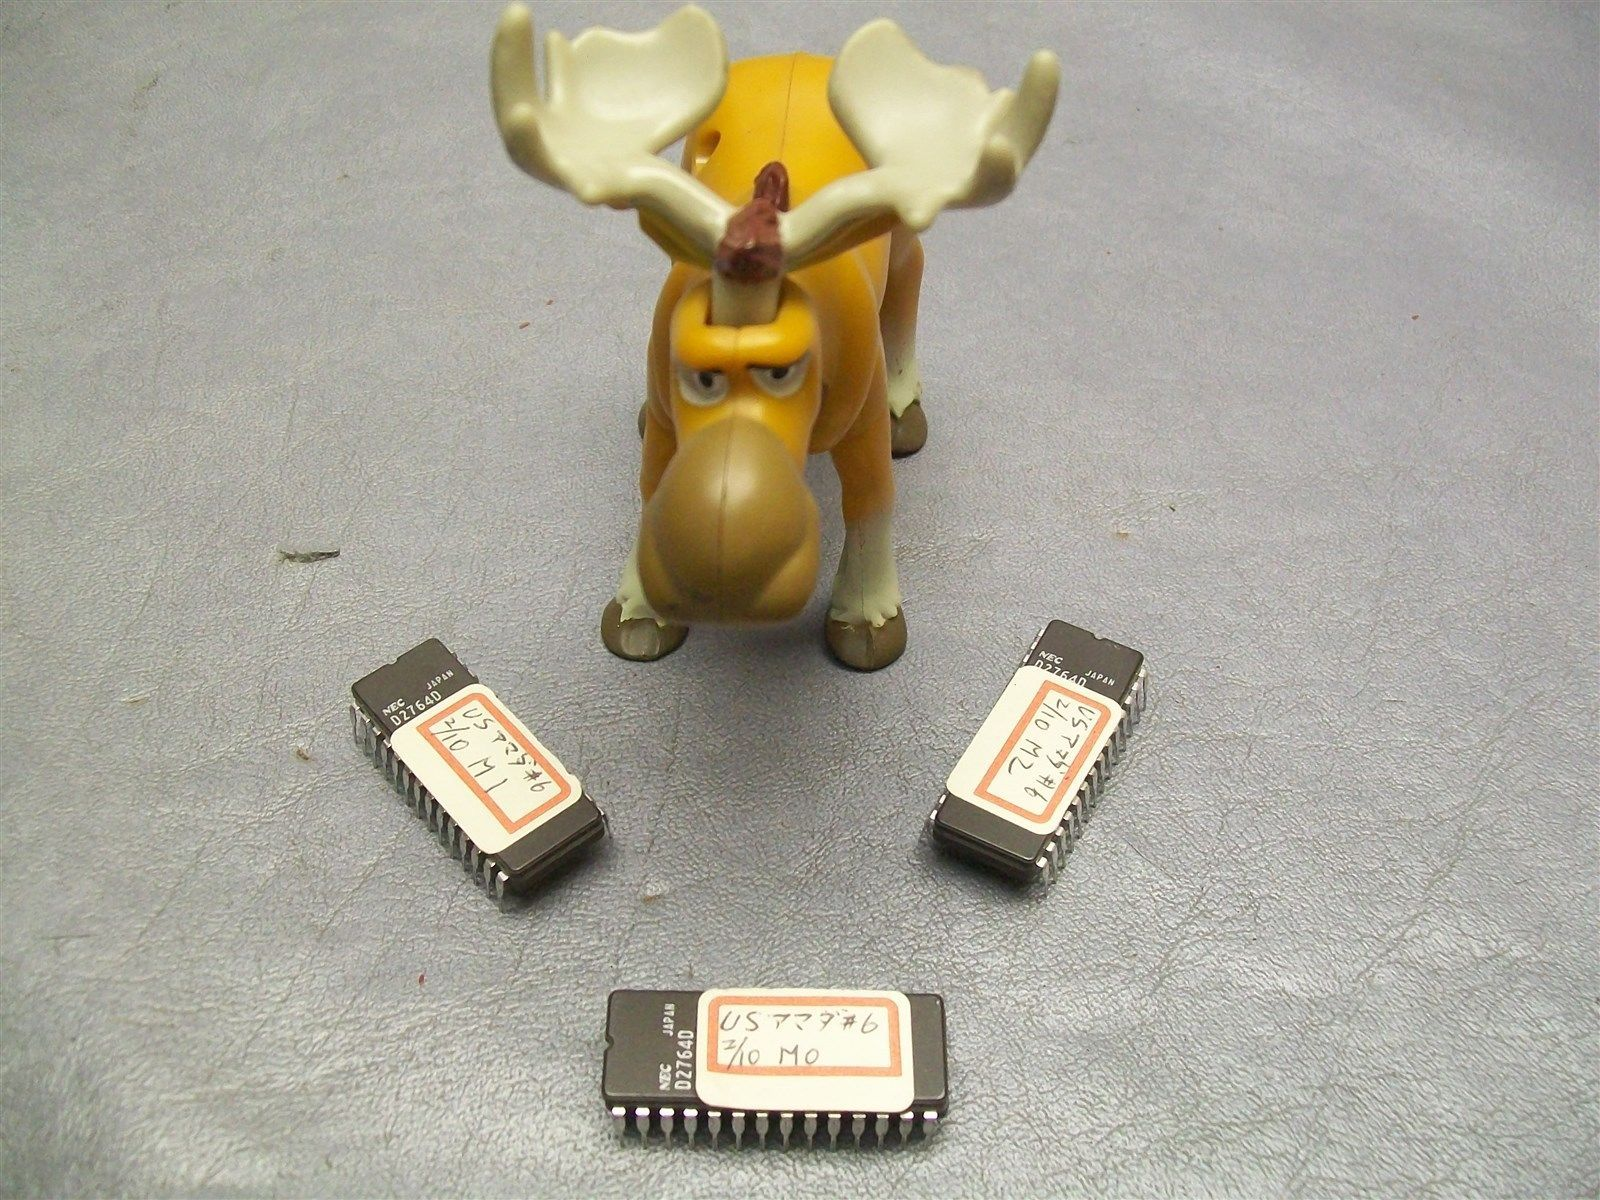 Nec D2764d Integrated Circuit Lot Of 3 And 50 Similar Items Image Picture Circuits S L1600